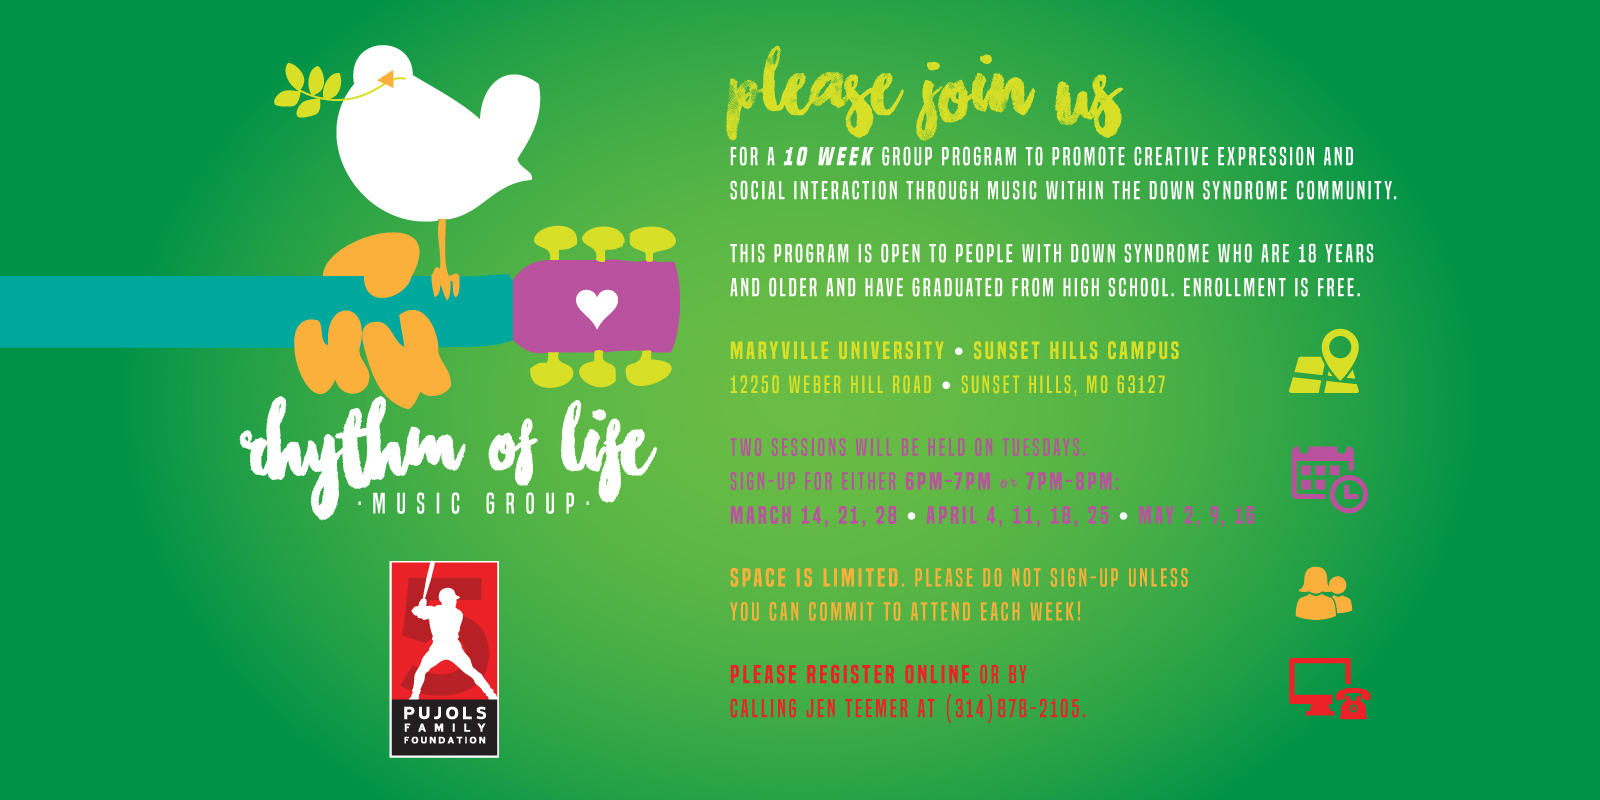 2017 Music Therapy Invitation - Spring Session